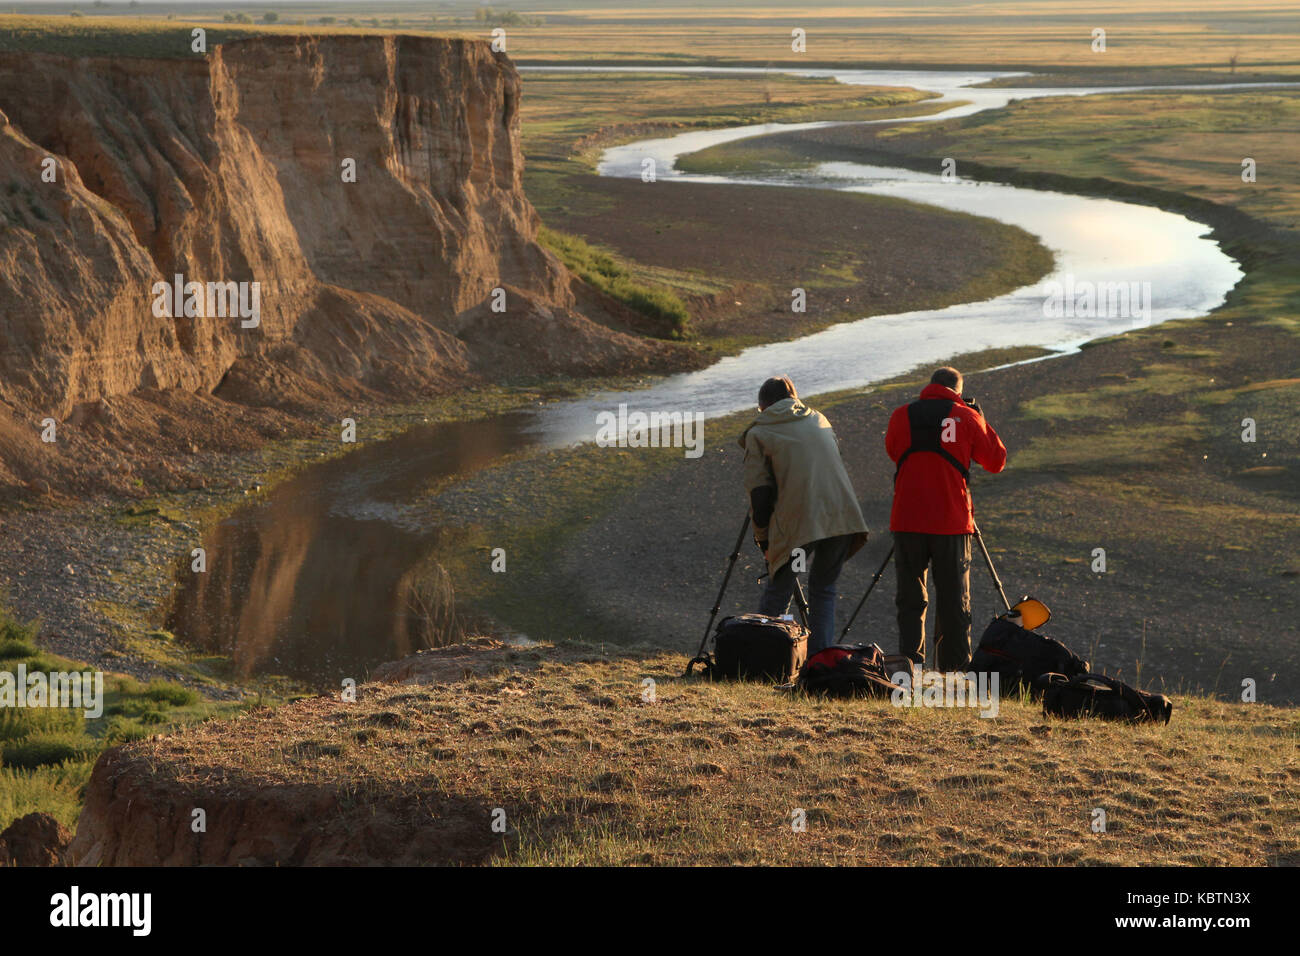 Photographs over the canyon. KHARKHORIN, MONGOLIA, JULY, 11 - Two photographers in the dawn lights over the river, Stock Photo